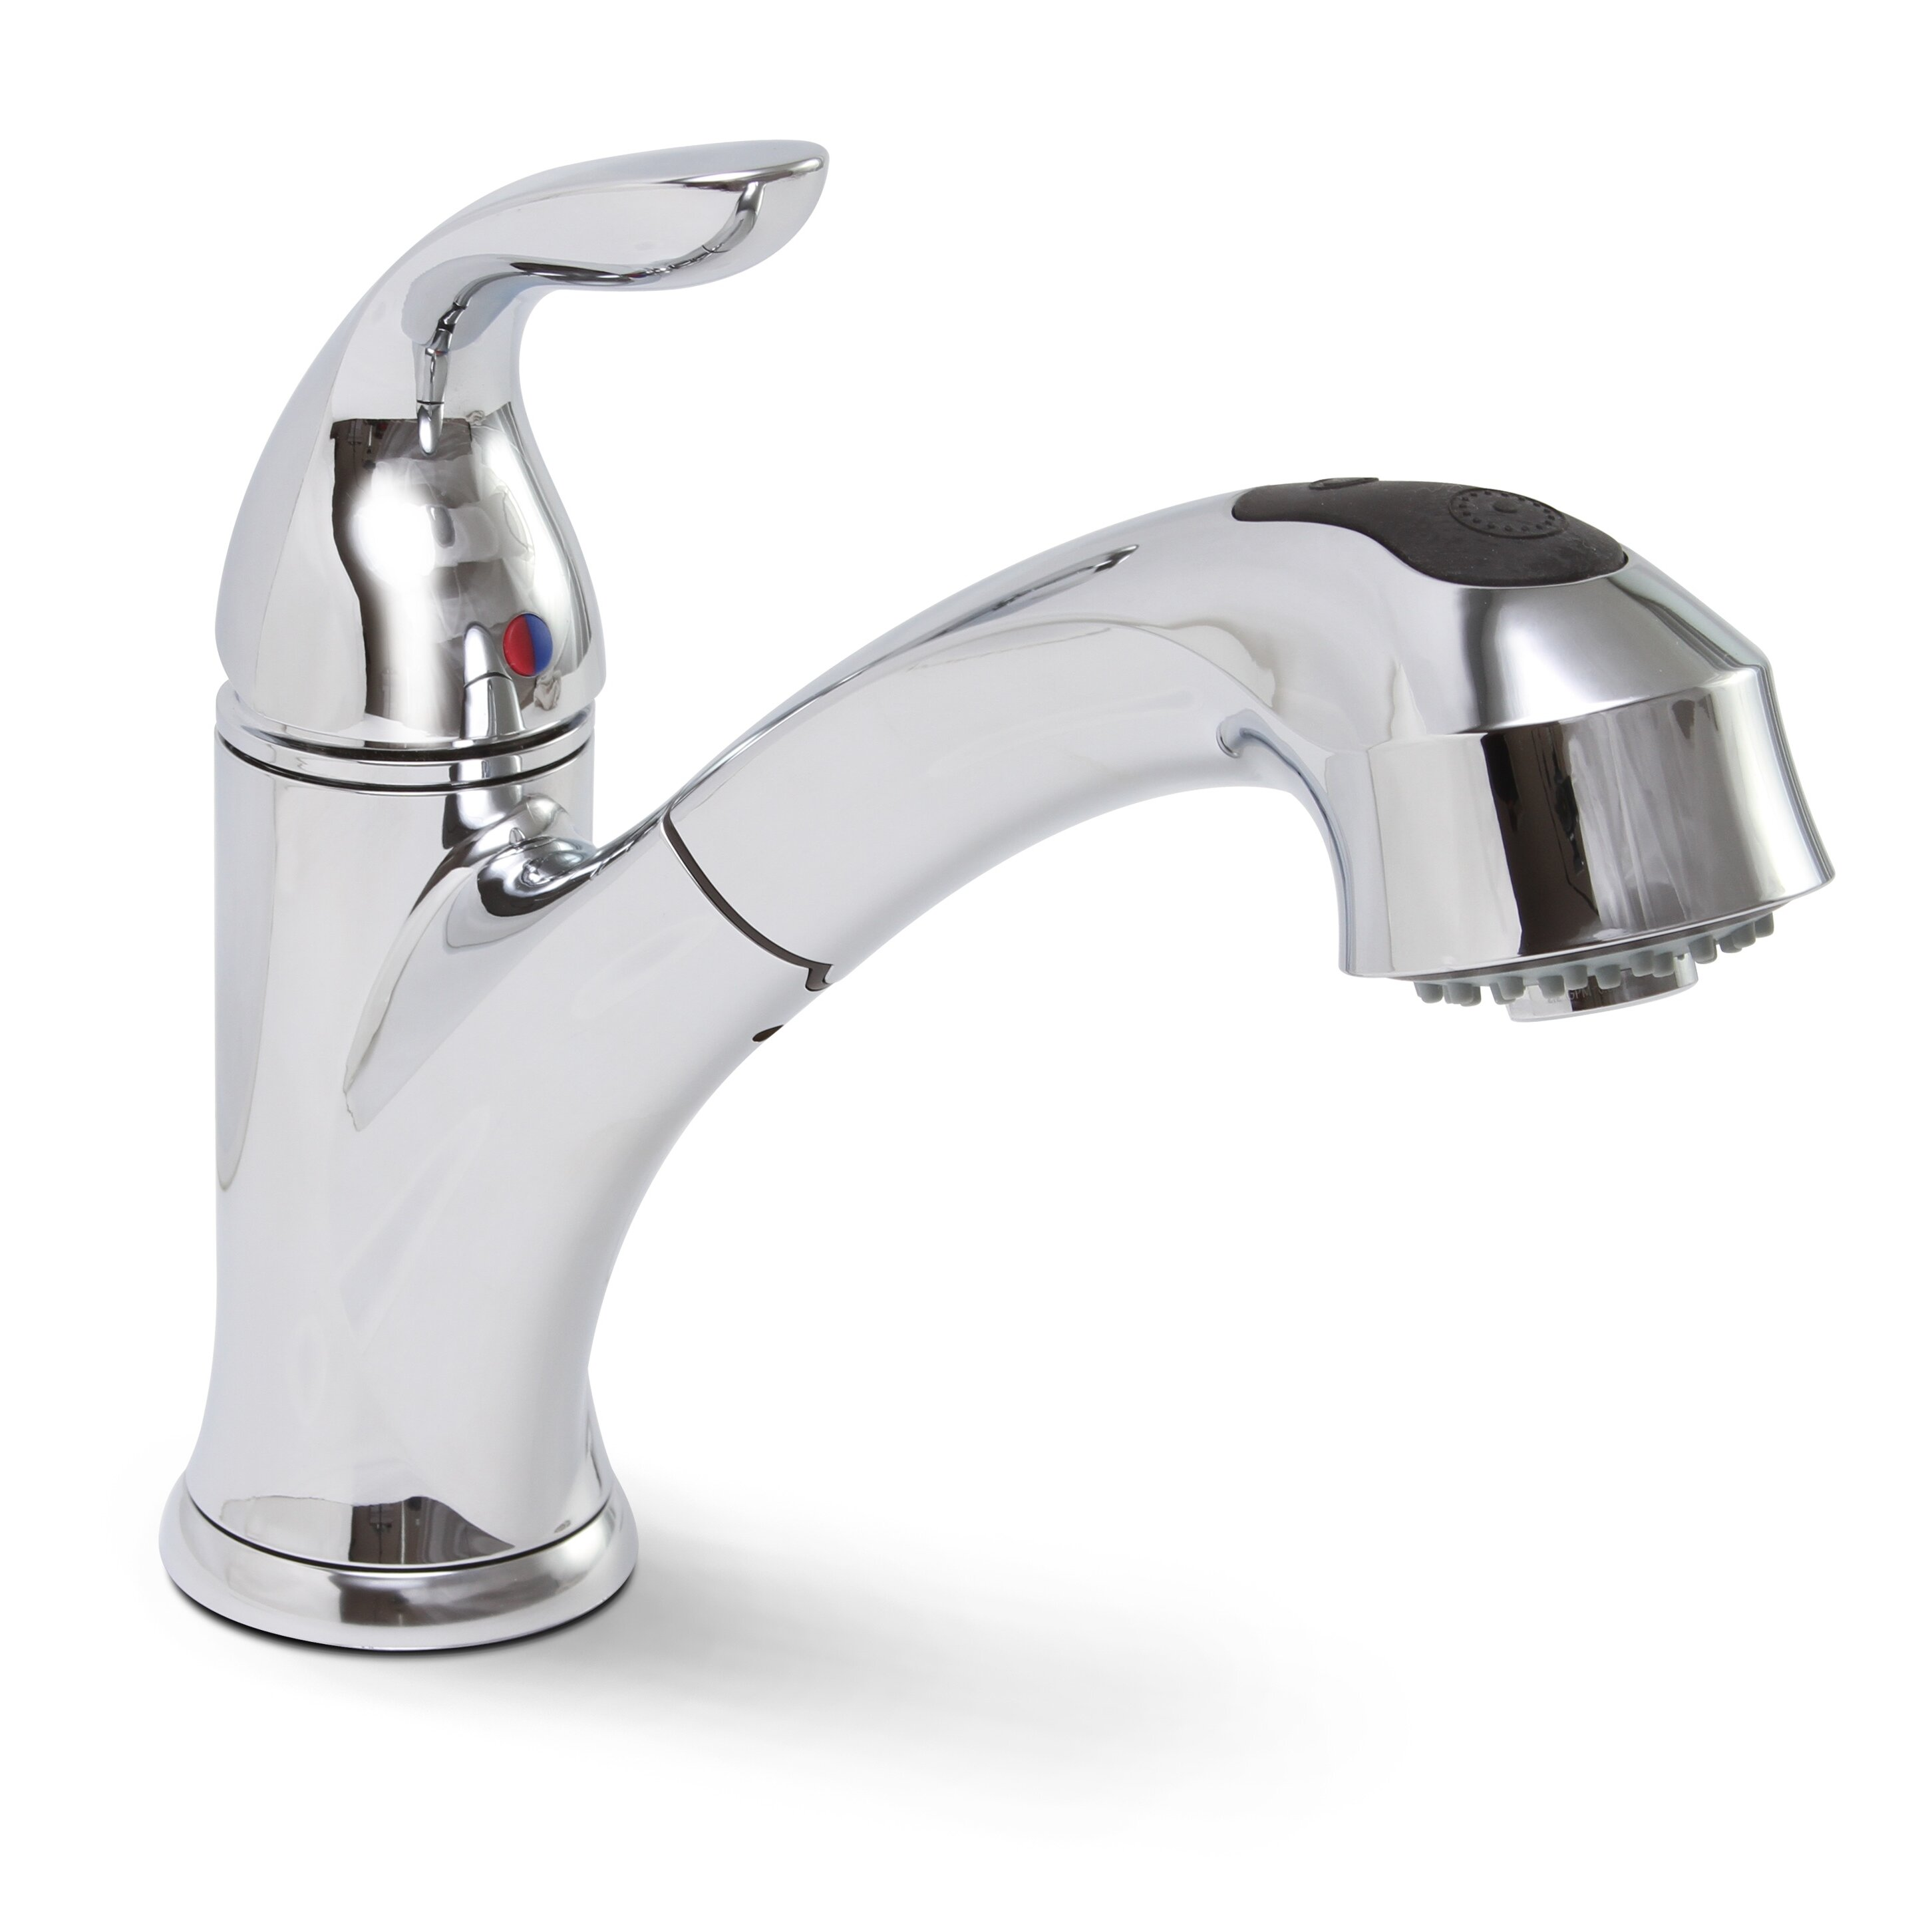 premier faucet waterfront single handle single hole brushed nickel kitchen sink faucet pull out spray with